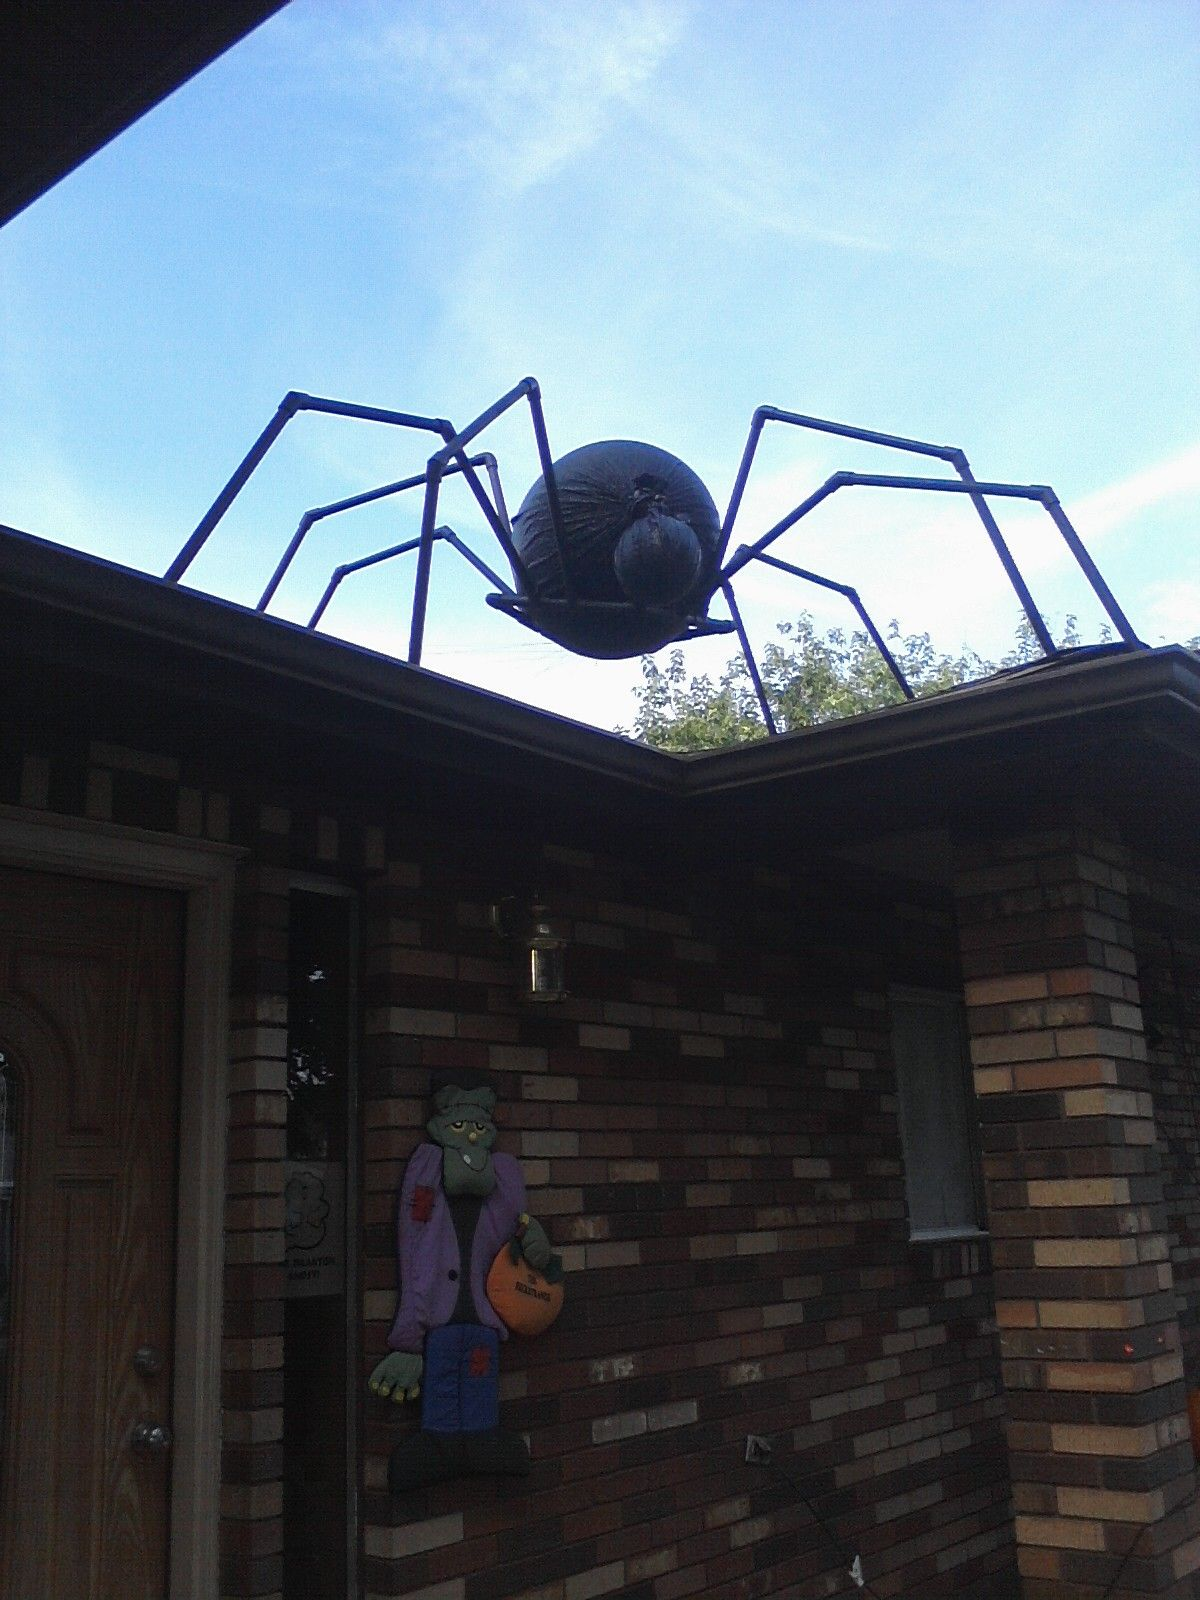 Penny S 2 Cents Pvc Spider Of The Century Halloween Spider Decorations Halloween Outdoor Decorations Halloween Spider